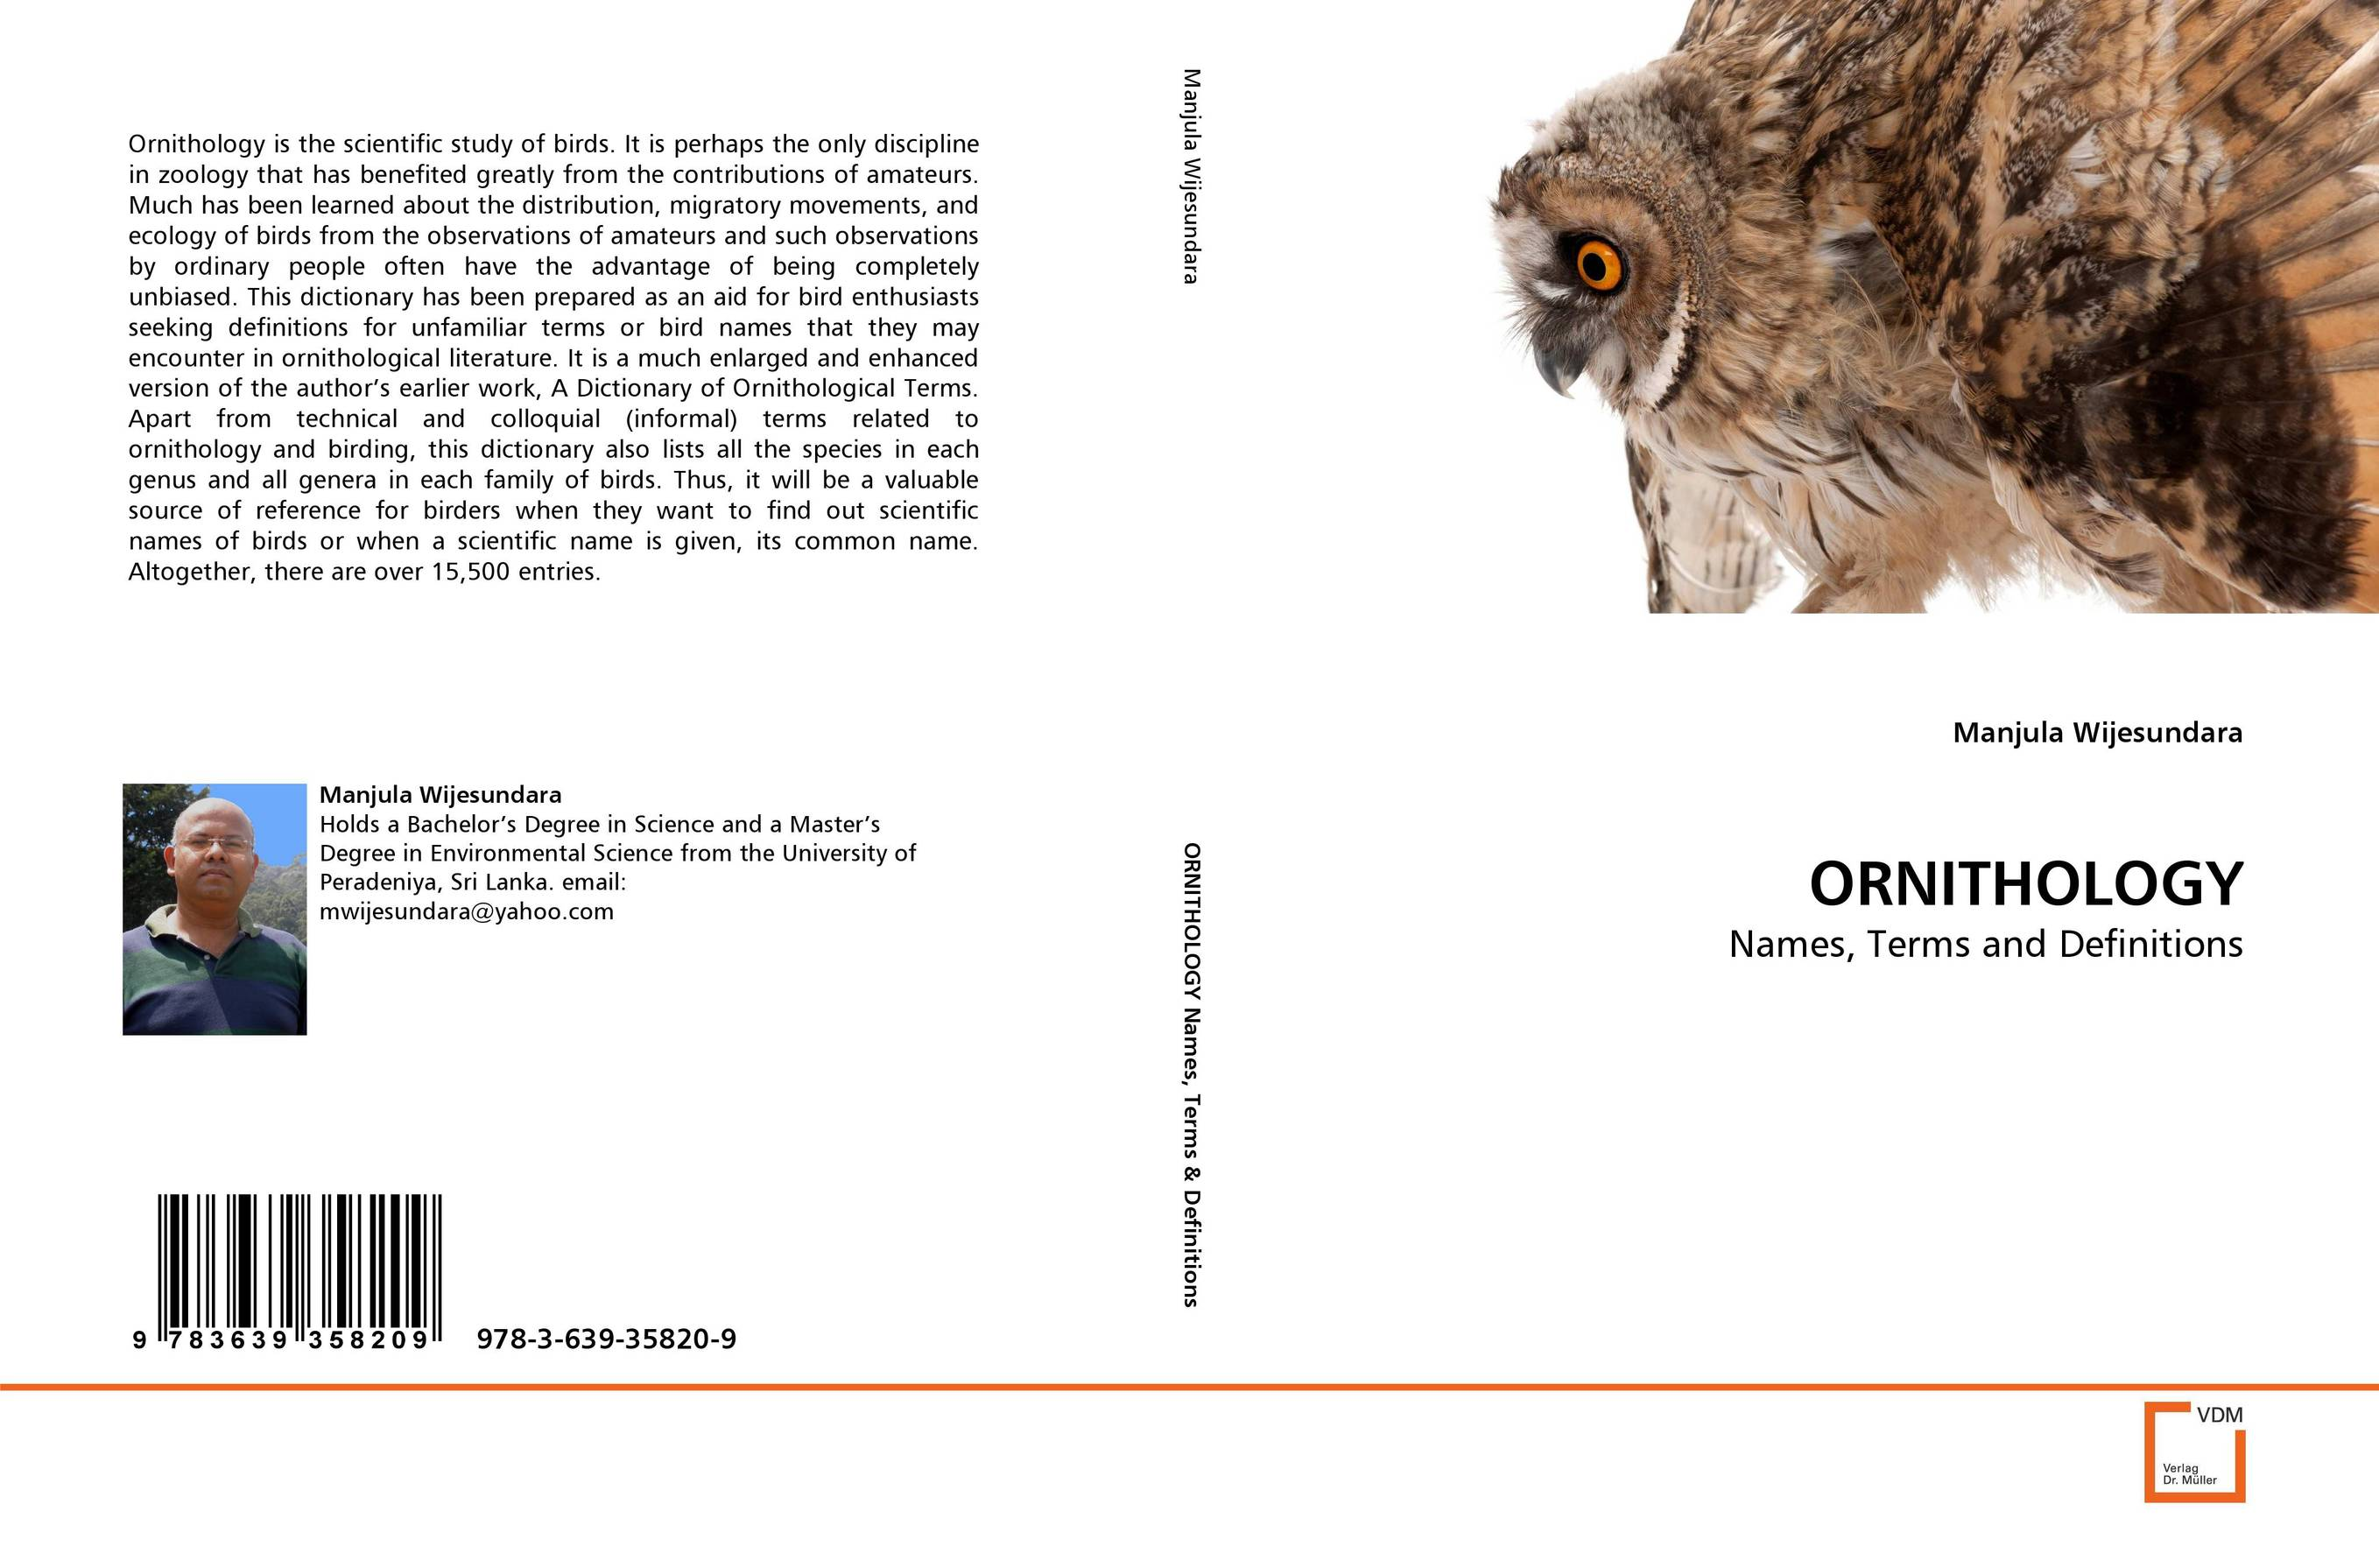 ORNITHOLOGY a dictionary of scientific terms